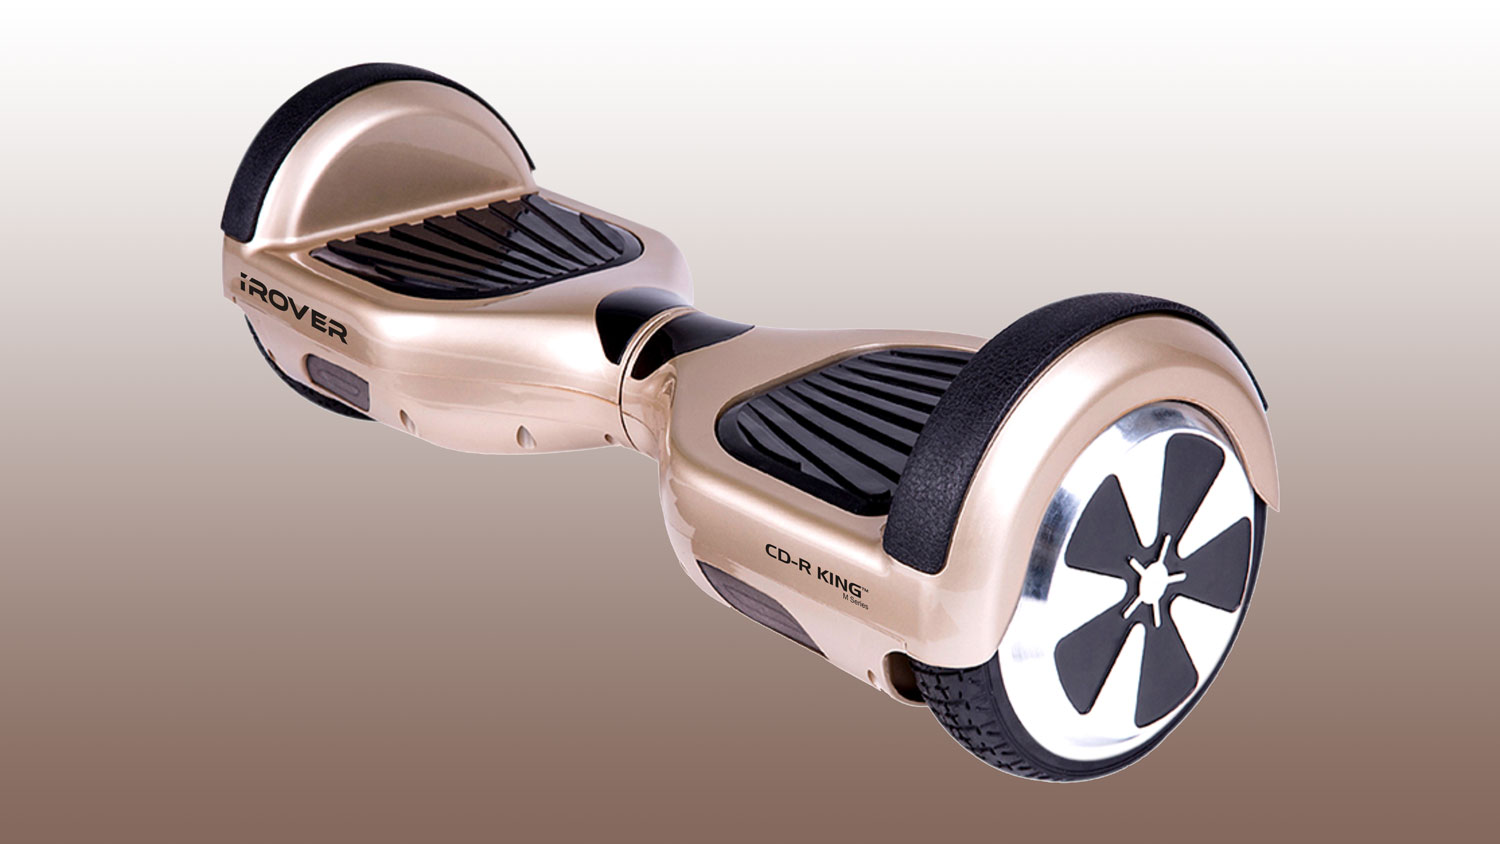 iRover hoverboard by CDR-King